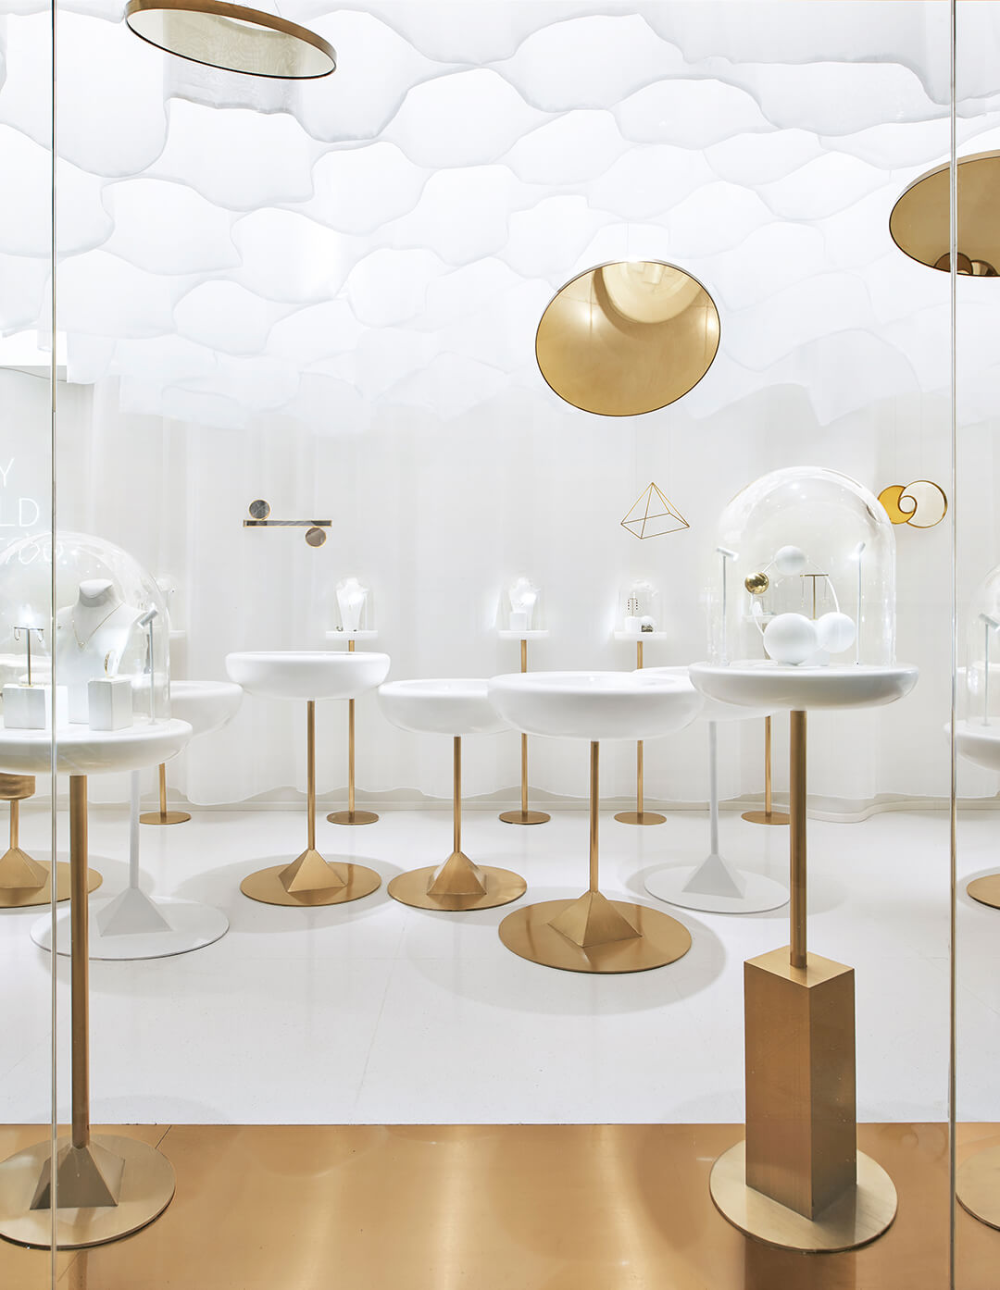 Small retail spaces shouldn't limit creativity, shows this Beijing jewellery store - News - Frameweb